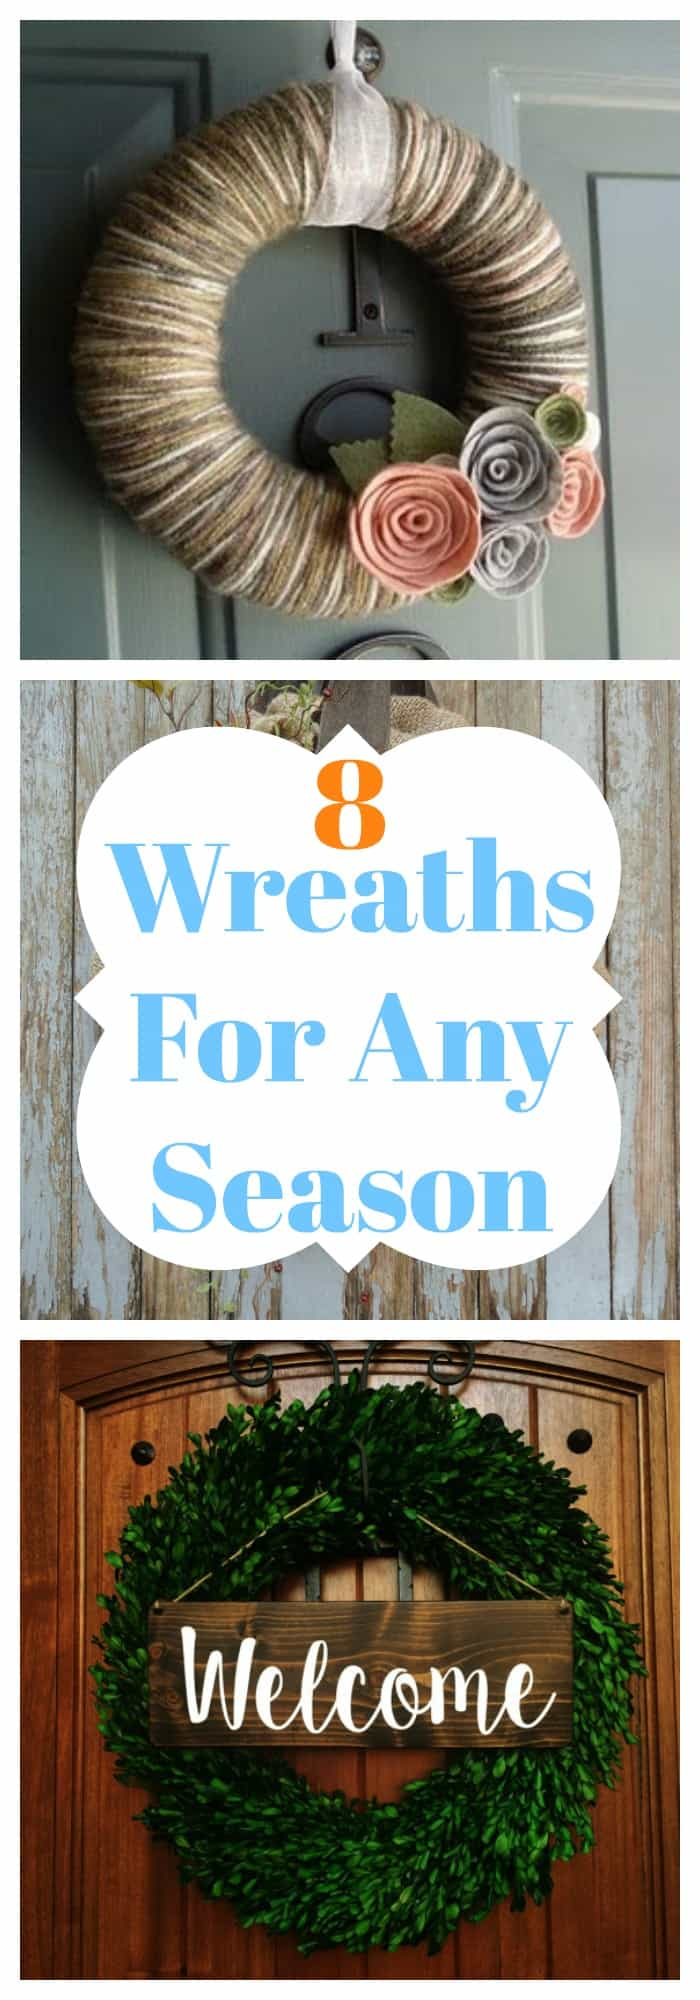 DIY-8 Wreaths For Any Season-The Organized Mom